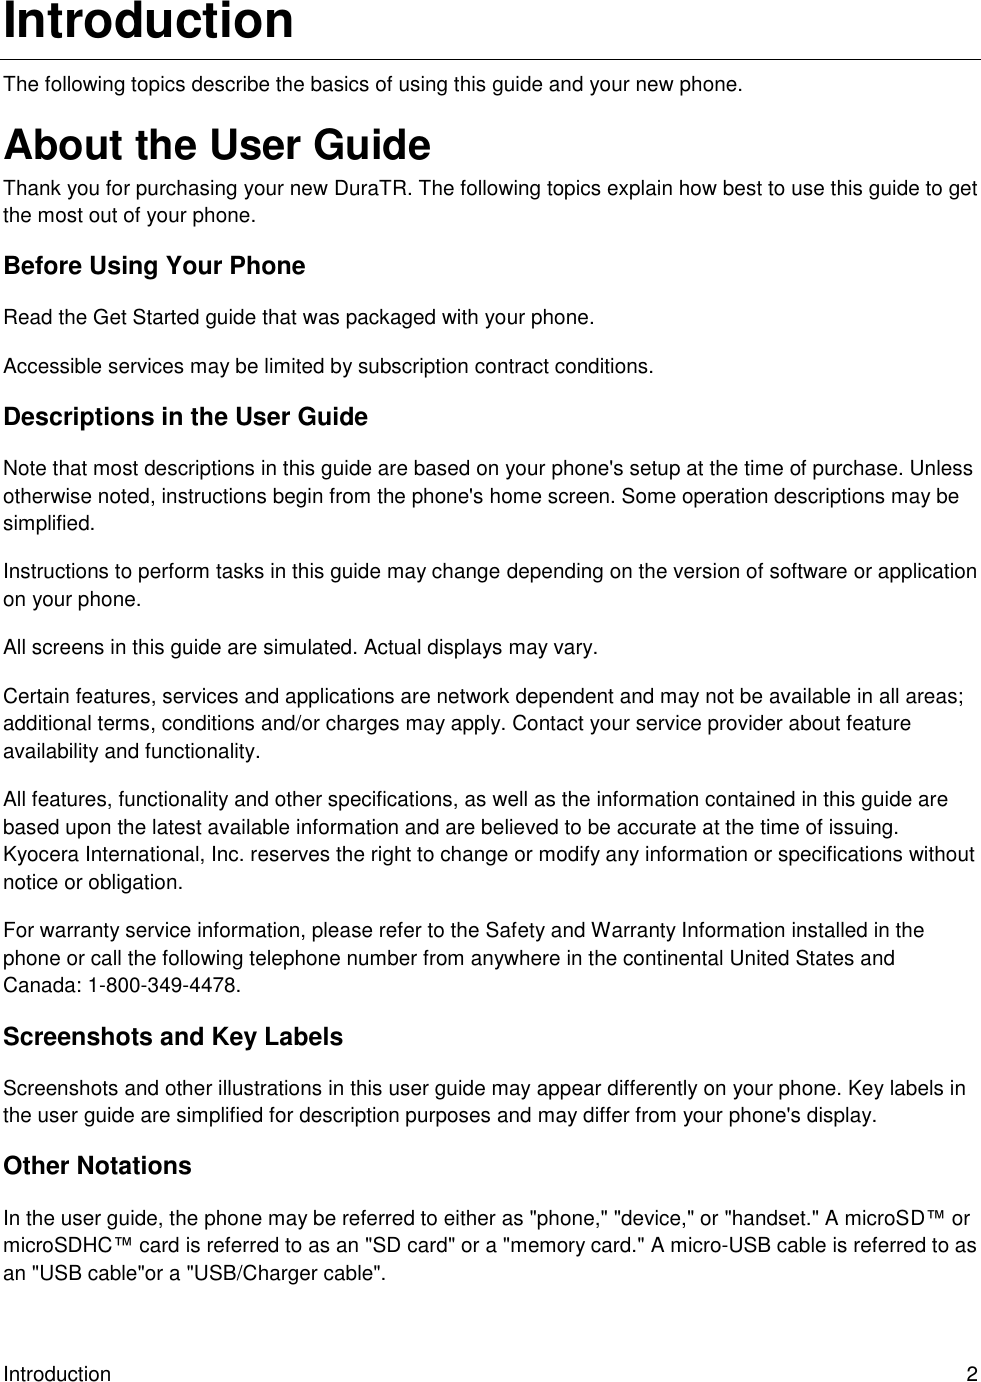 Spring Real Life Based Introduction To Dependency Manual Guide